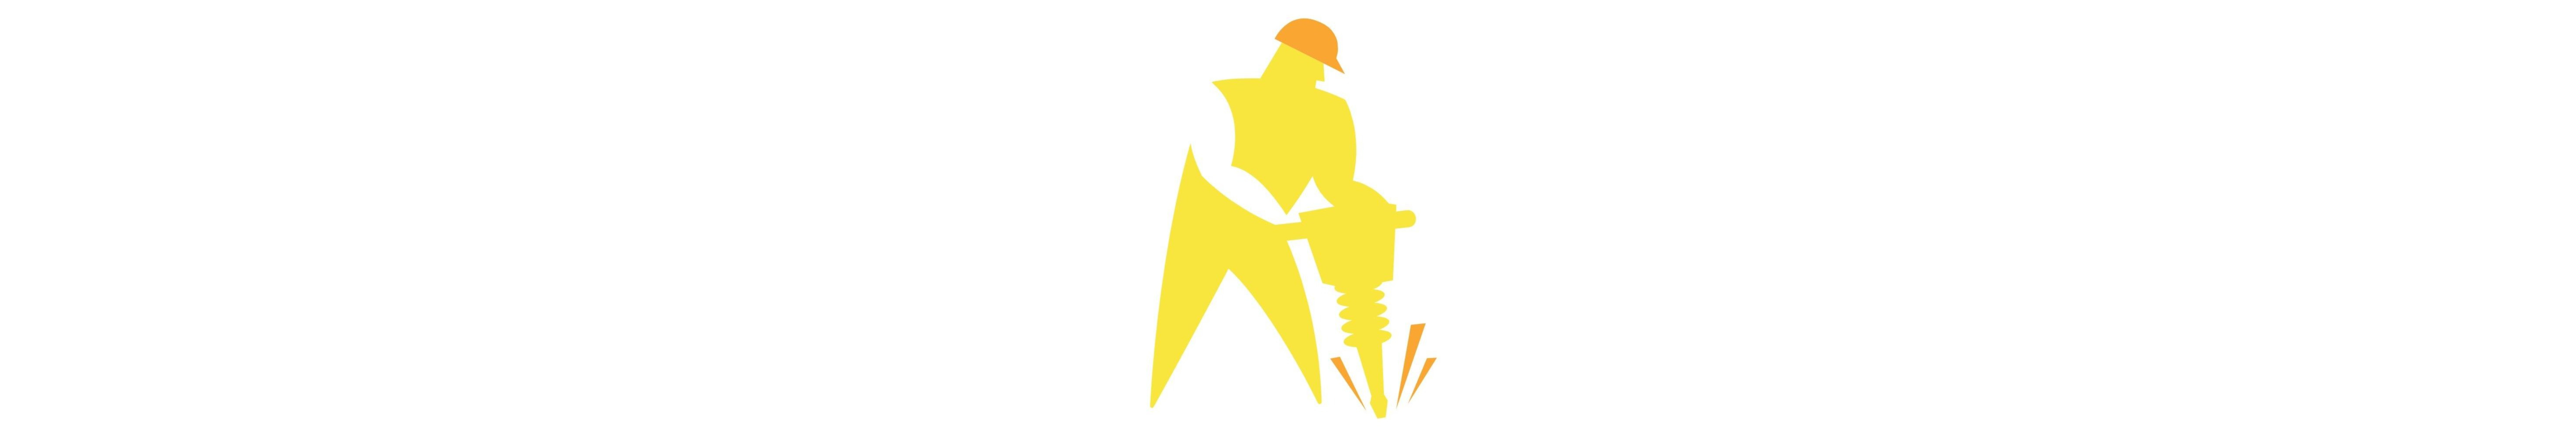 Construction Tool Hire, sales and repairs